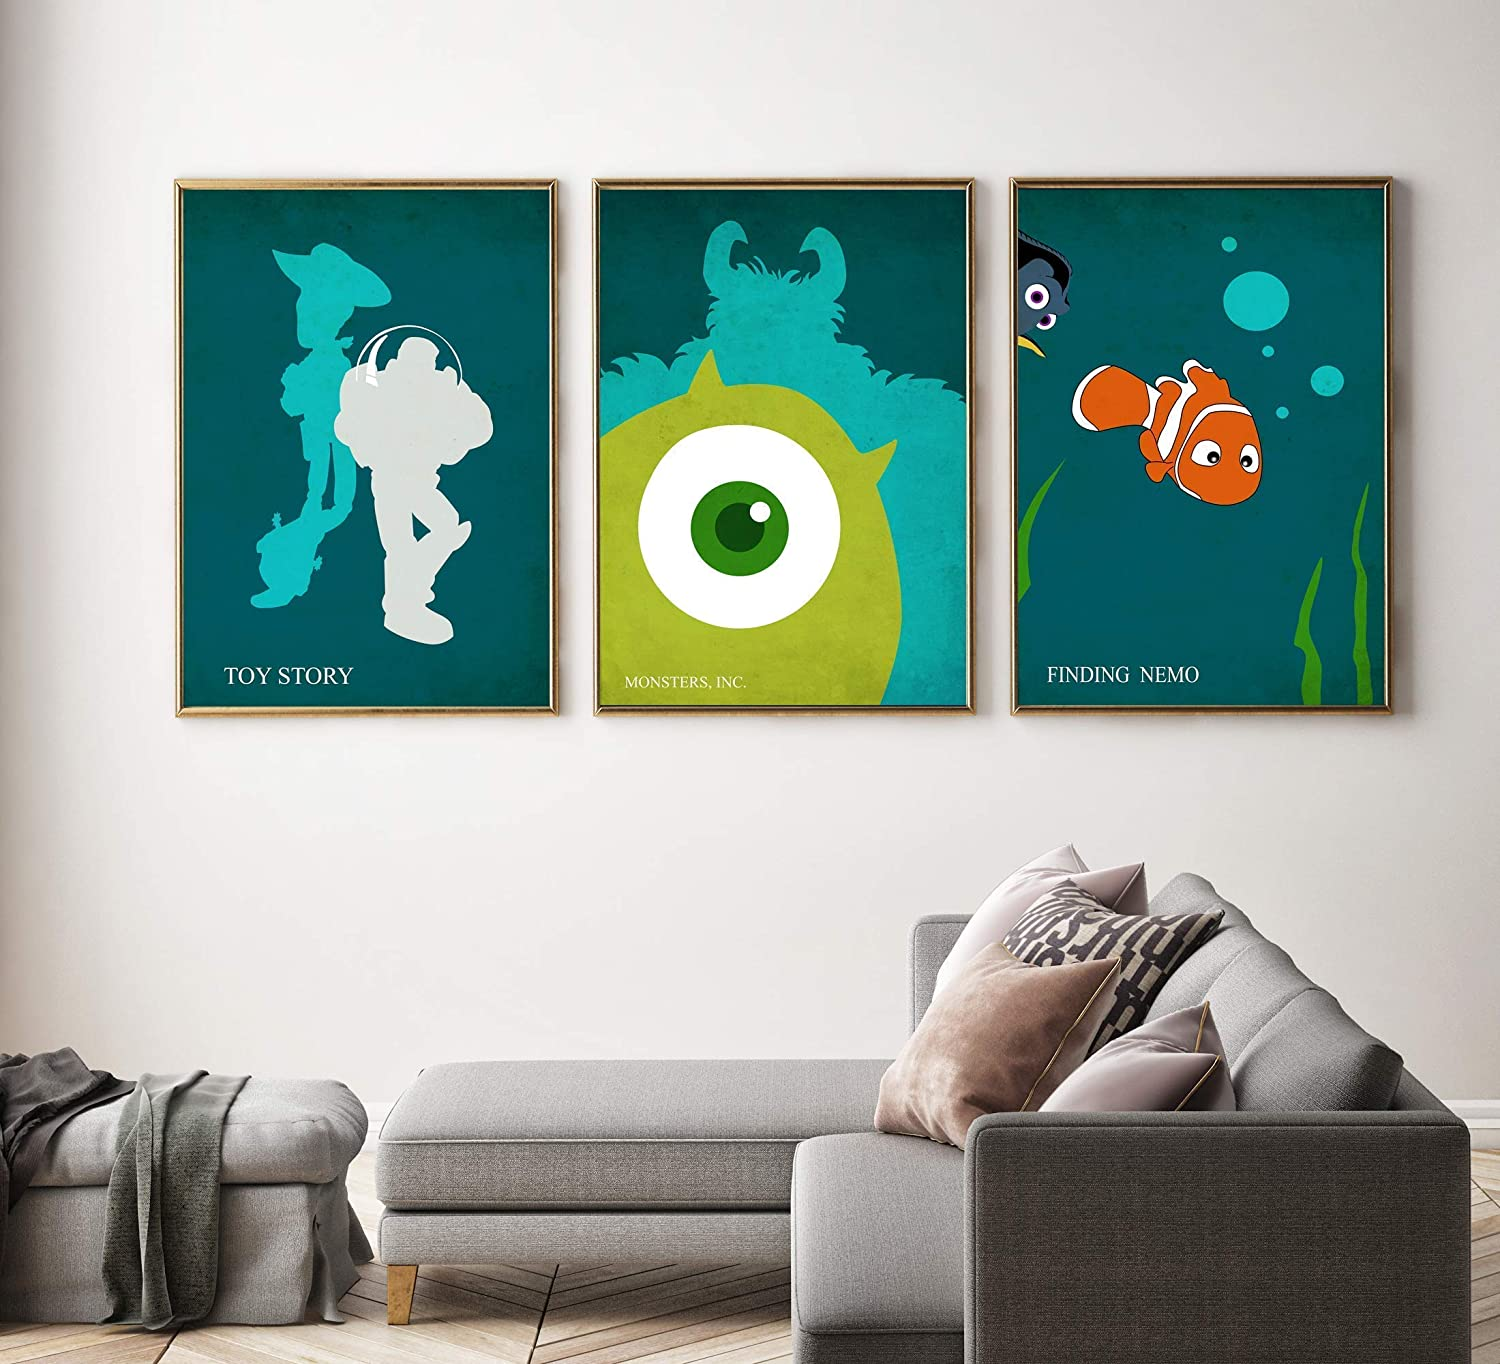 Toy Story 4 Movie Poster or Canvas Art Print Framed Option A3 A4 Sizes